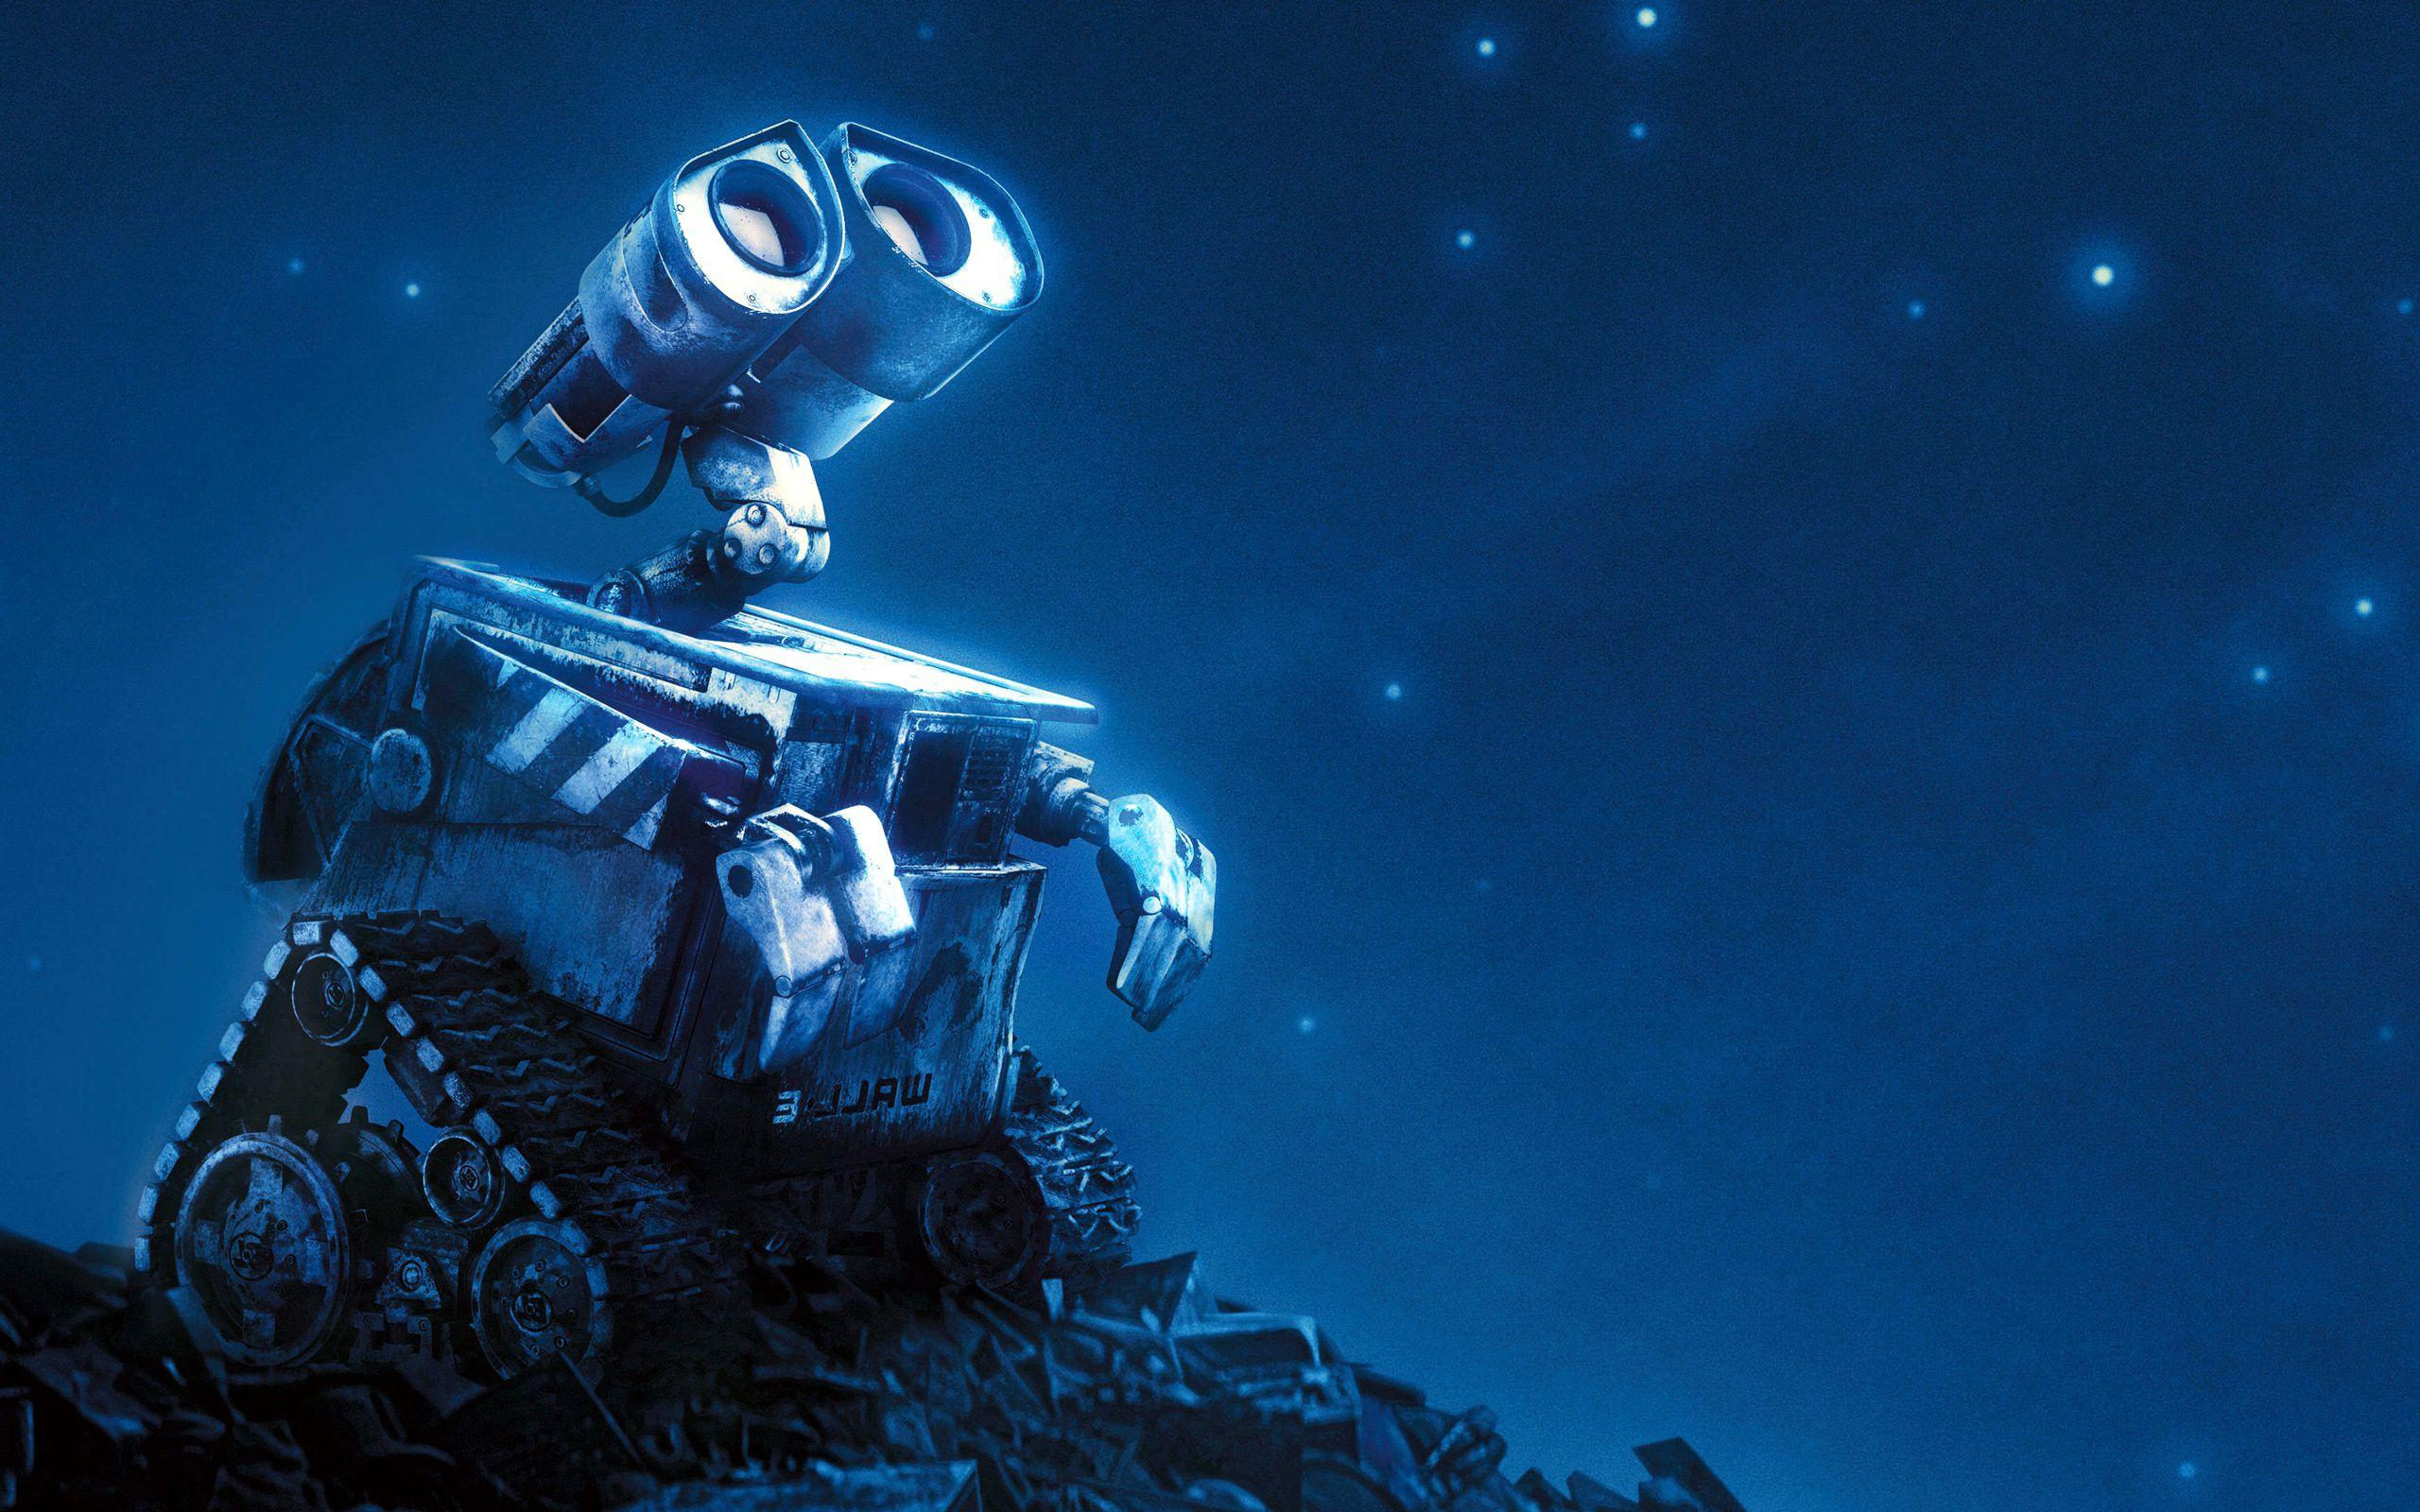 WALL-E Wallpapers - Fondo de pantalla de la cueva